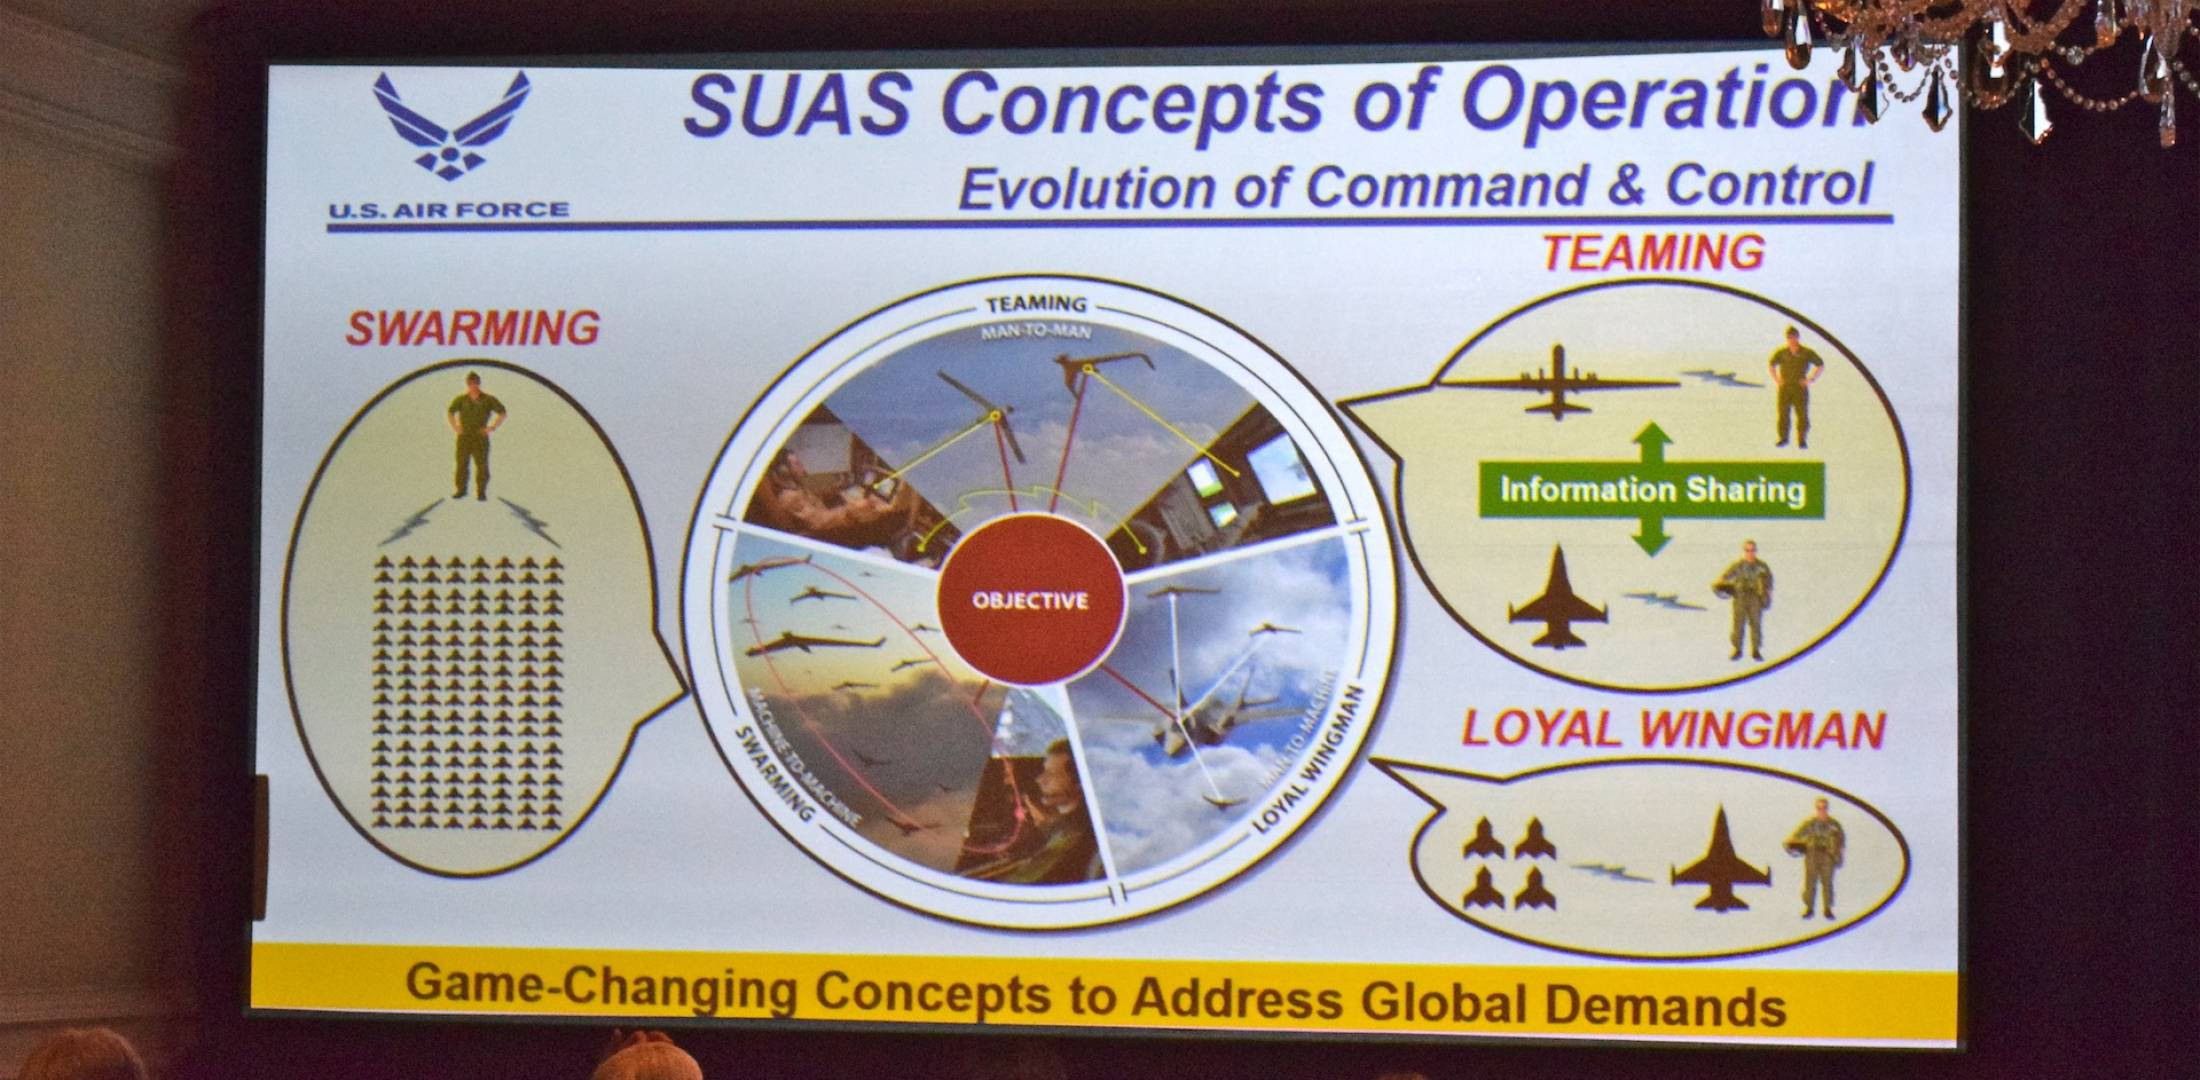 U.S. Air Force small UAS graphic